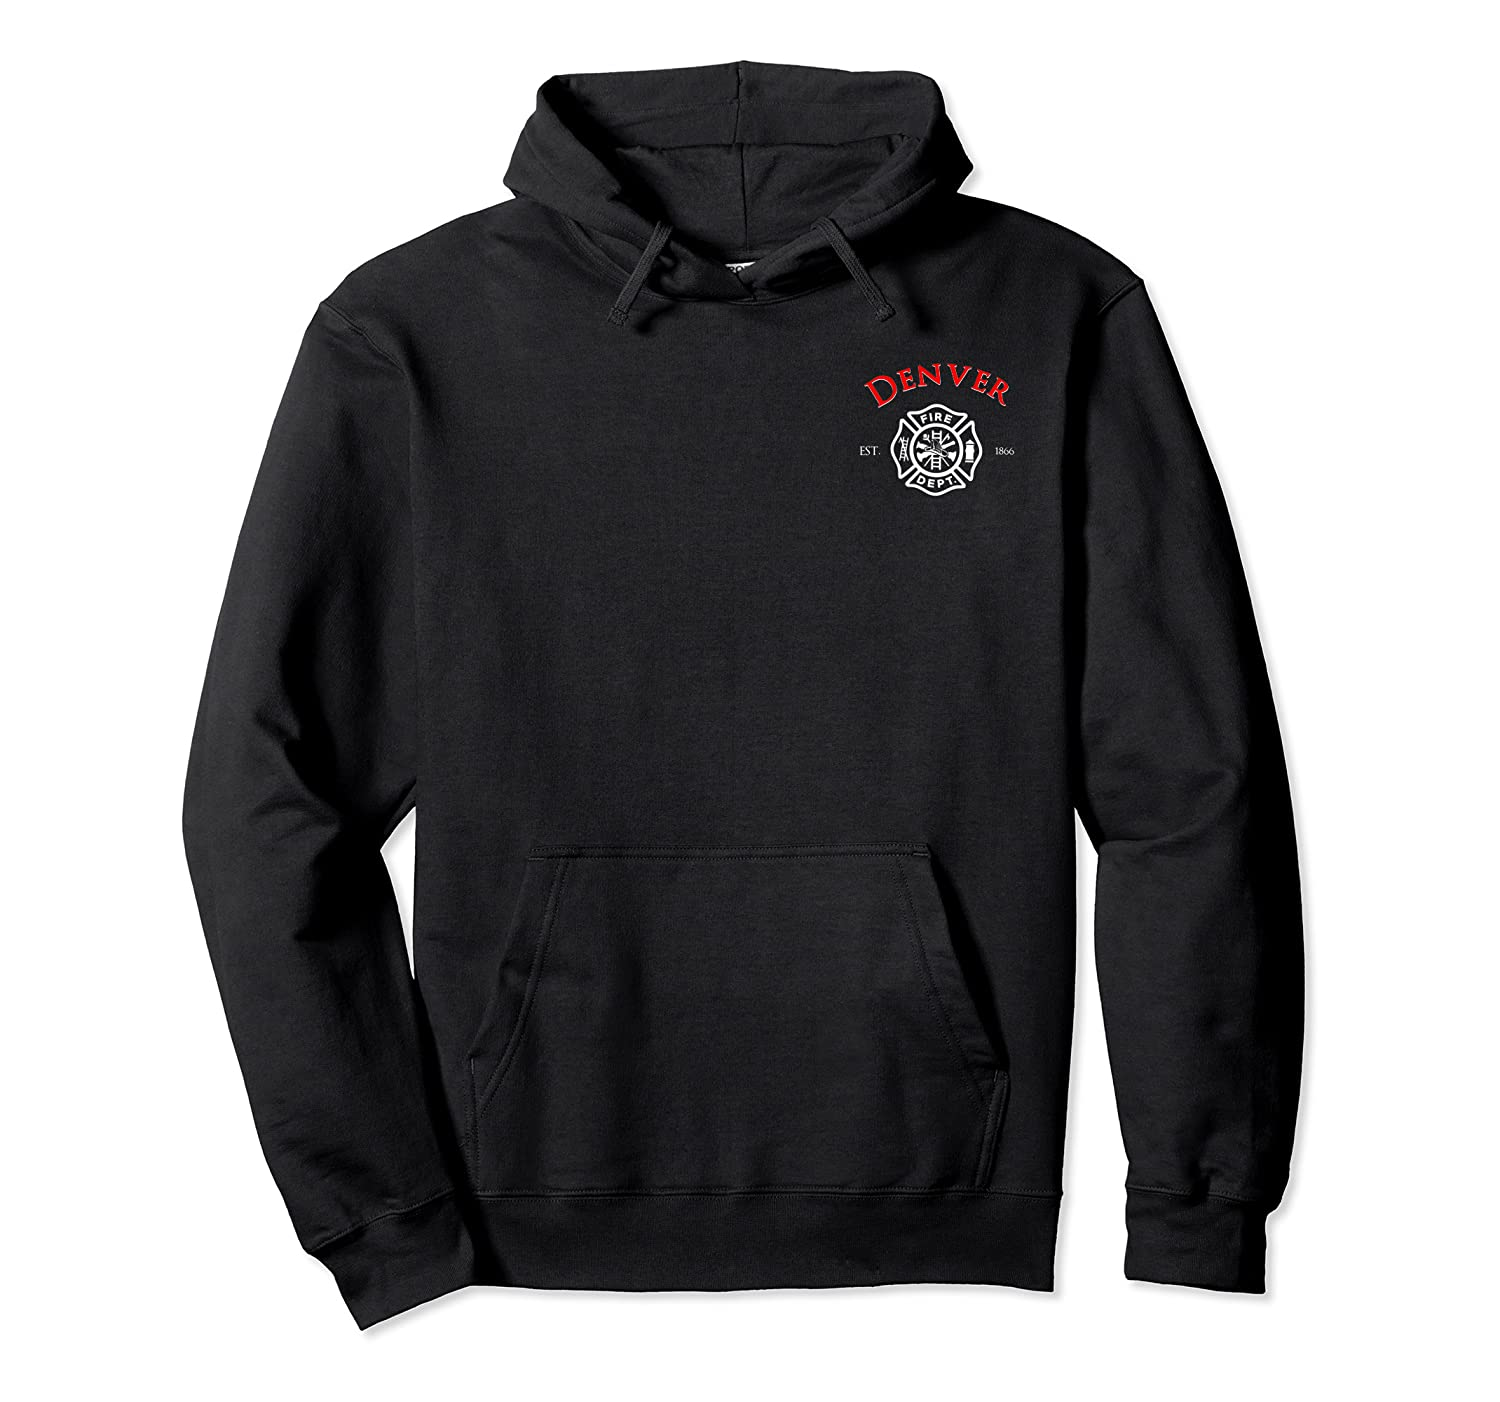 City Of Denver Fire Rescue Colorado Firefighter T Shirt Unisex Pullover Hoodie